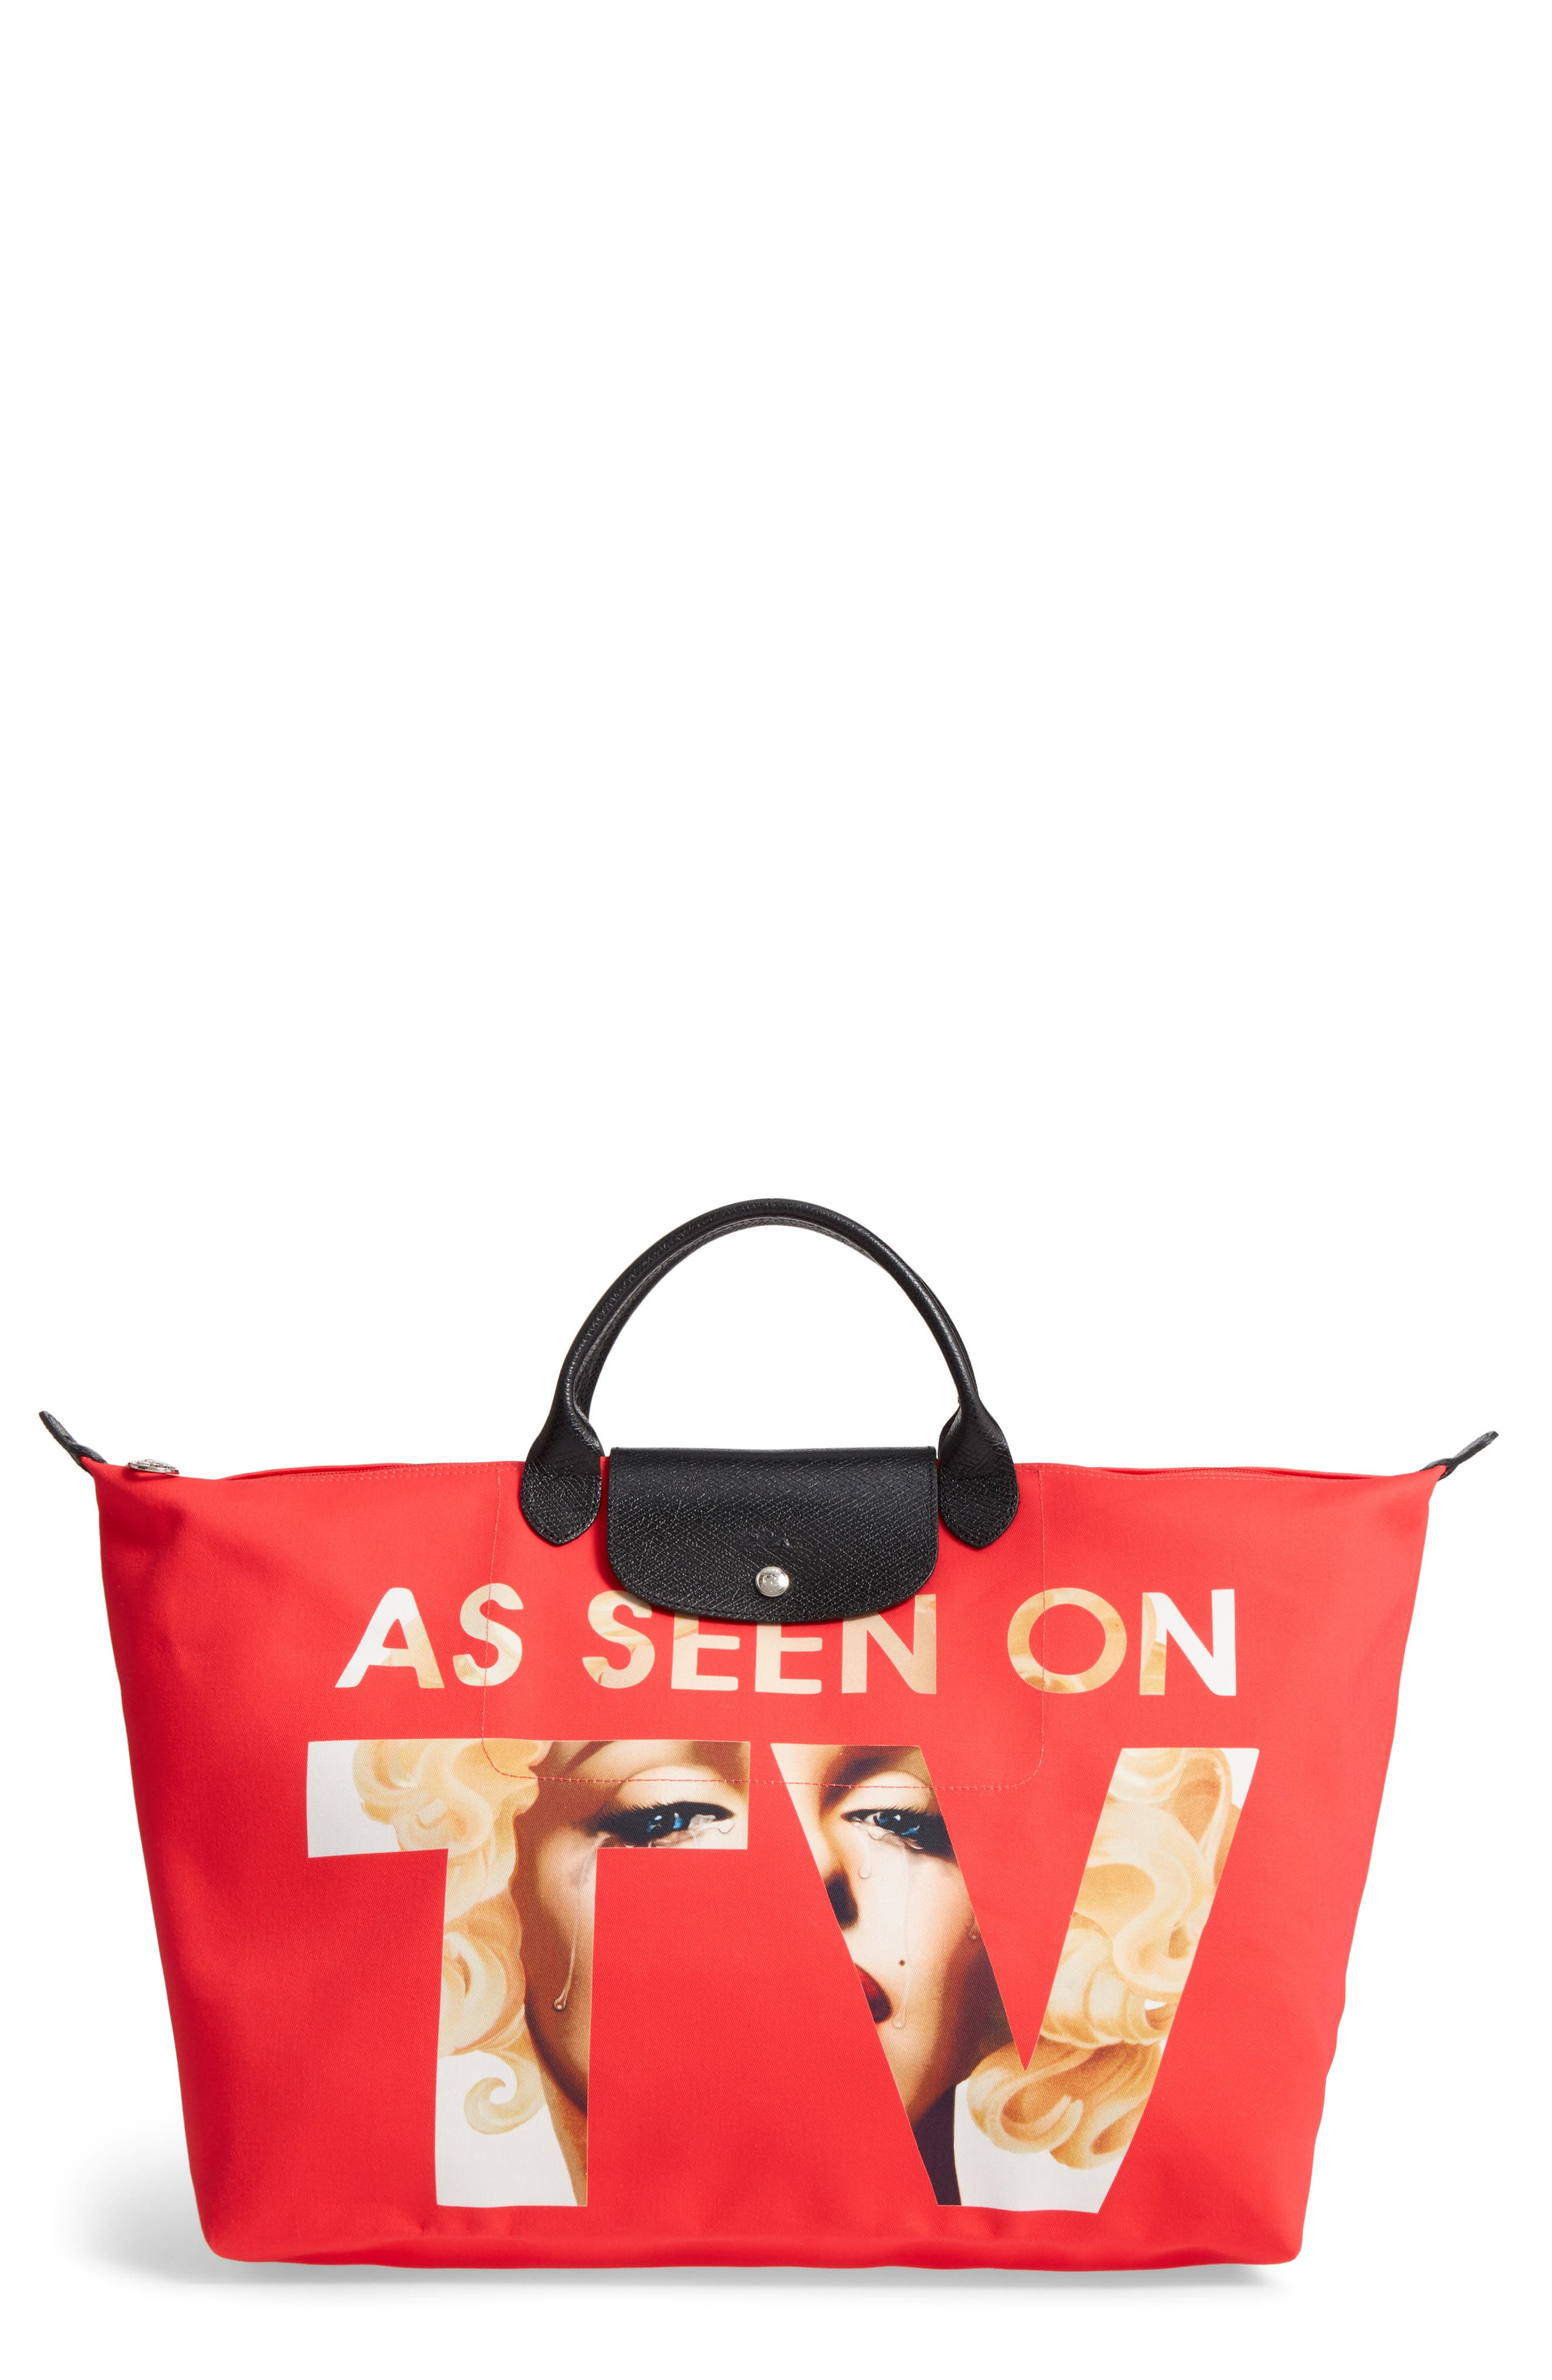 x Jeremy Scott As Seen on TV Tote,                             Main thumbnail 1, color,